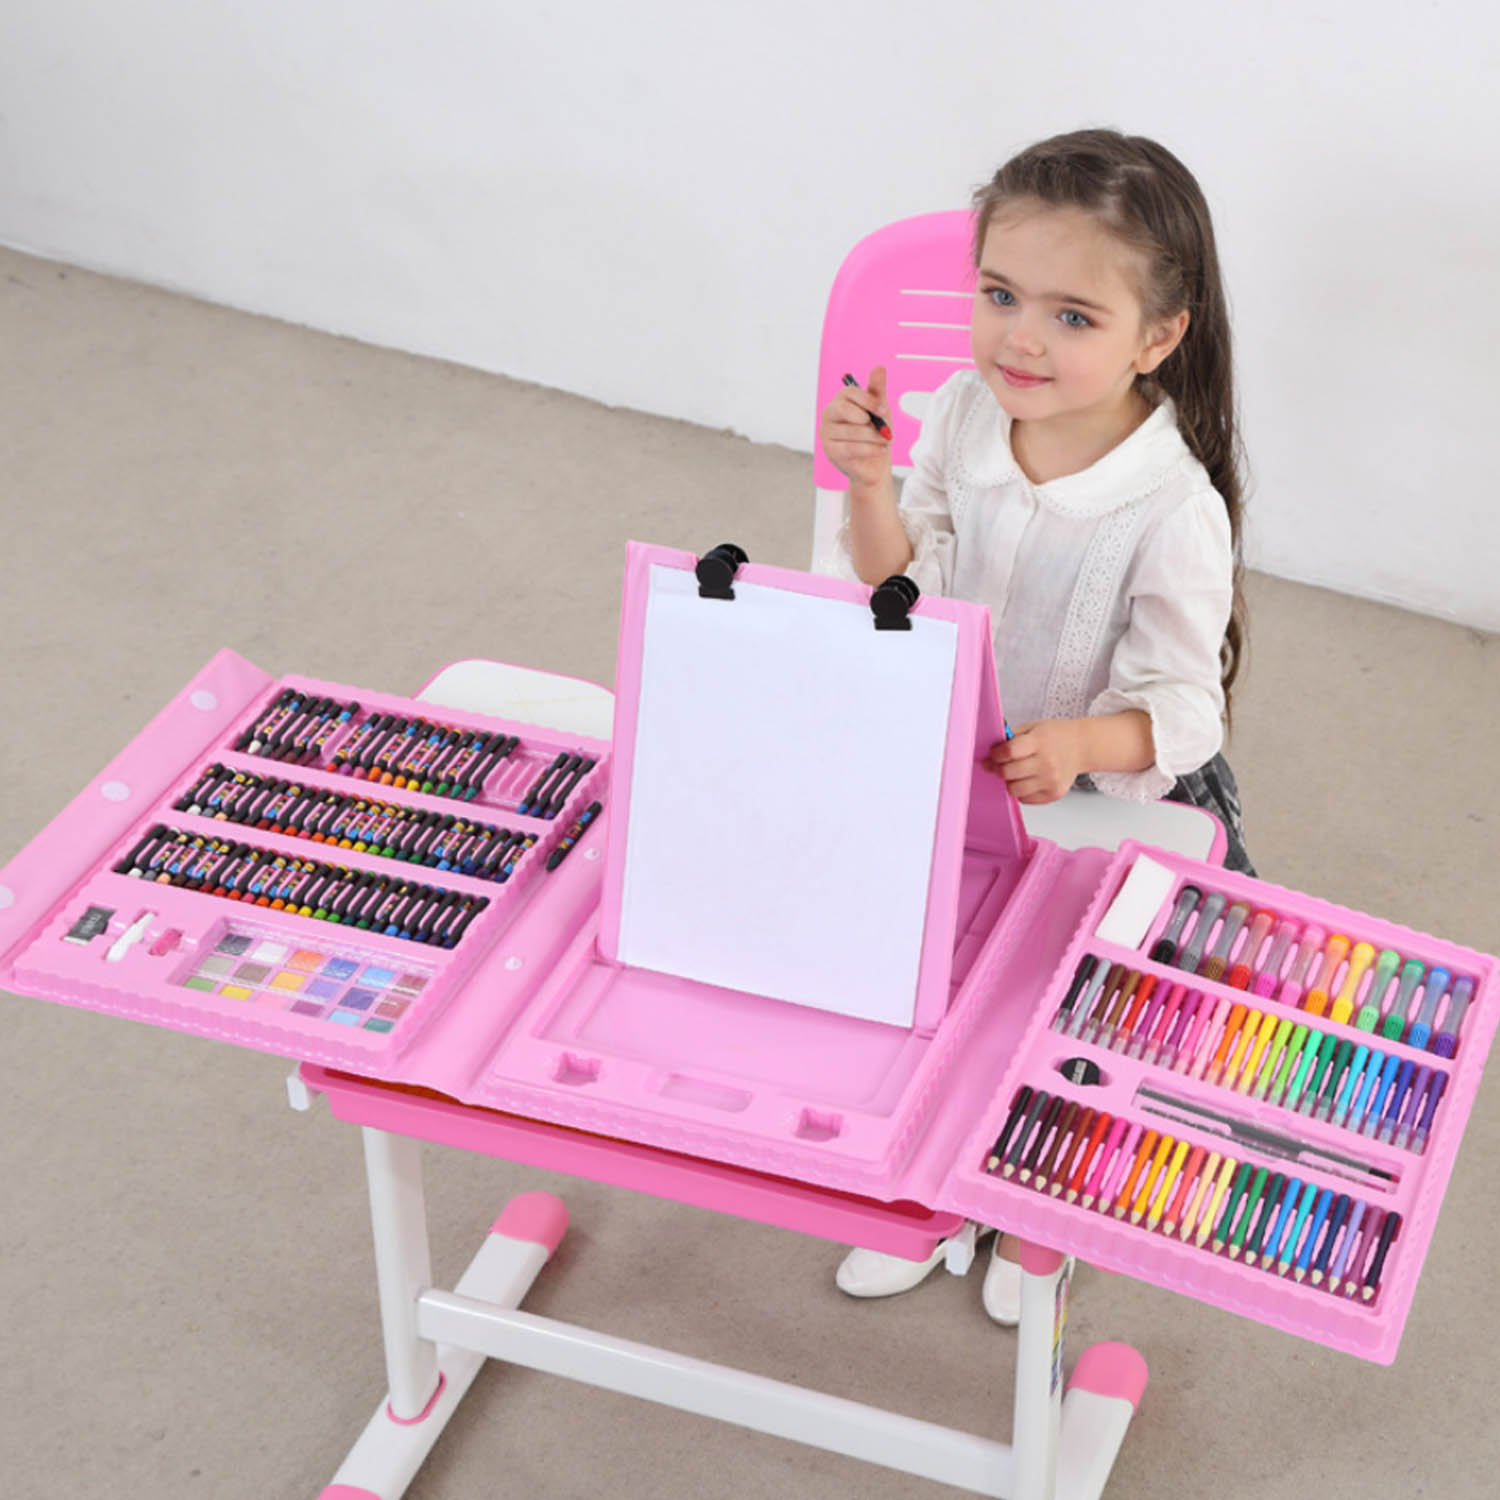 176PCS Children Painting Set Colored Pencil Kit Crayon Marker Pen Brush Drawing Tools Set Kindergarten Supplies Kids Gifts